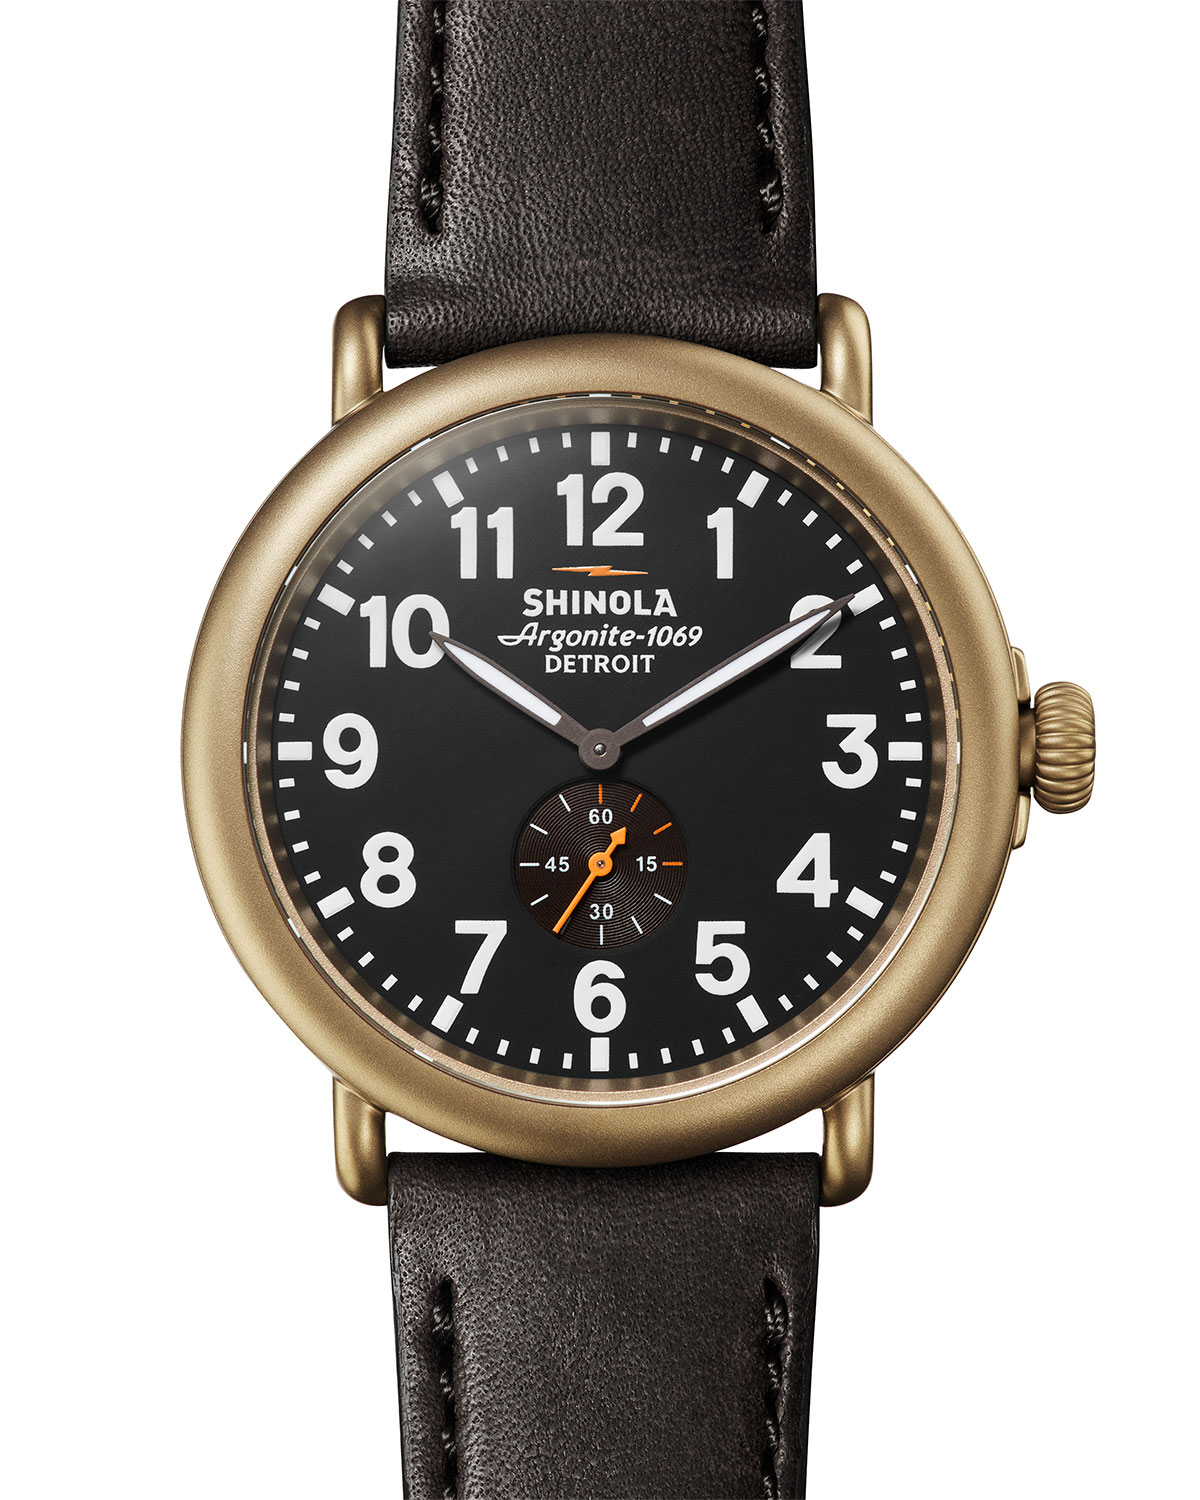 Shinola MEN'S 47MM RUNWELL SUB-SECOND WATCH WITH LEATHER STRAP